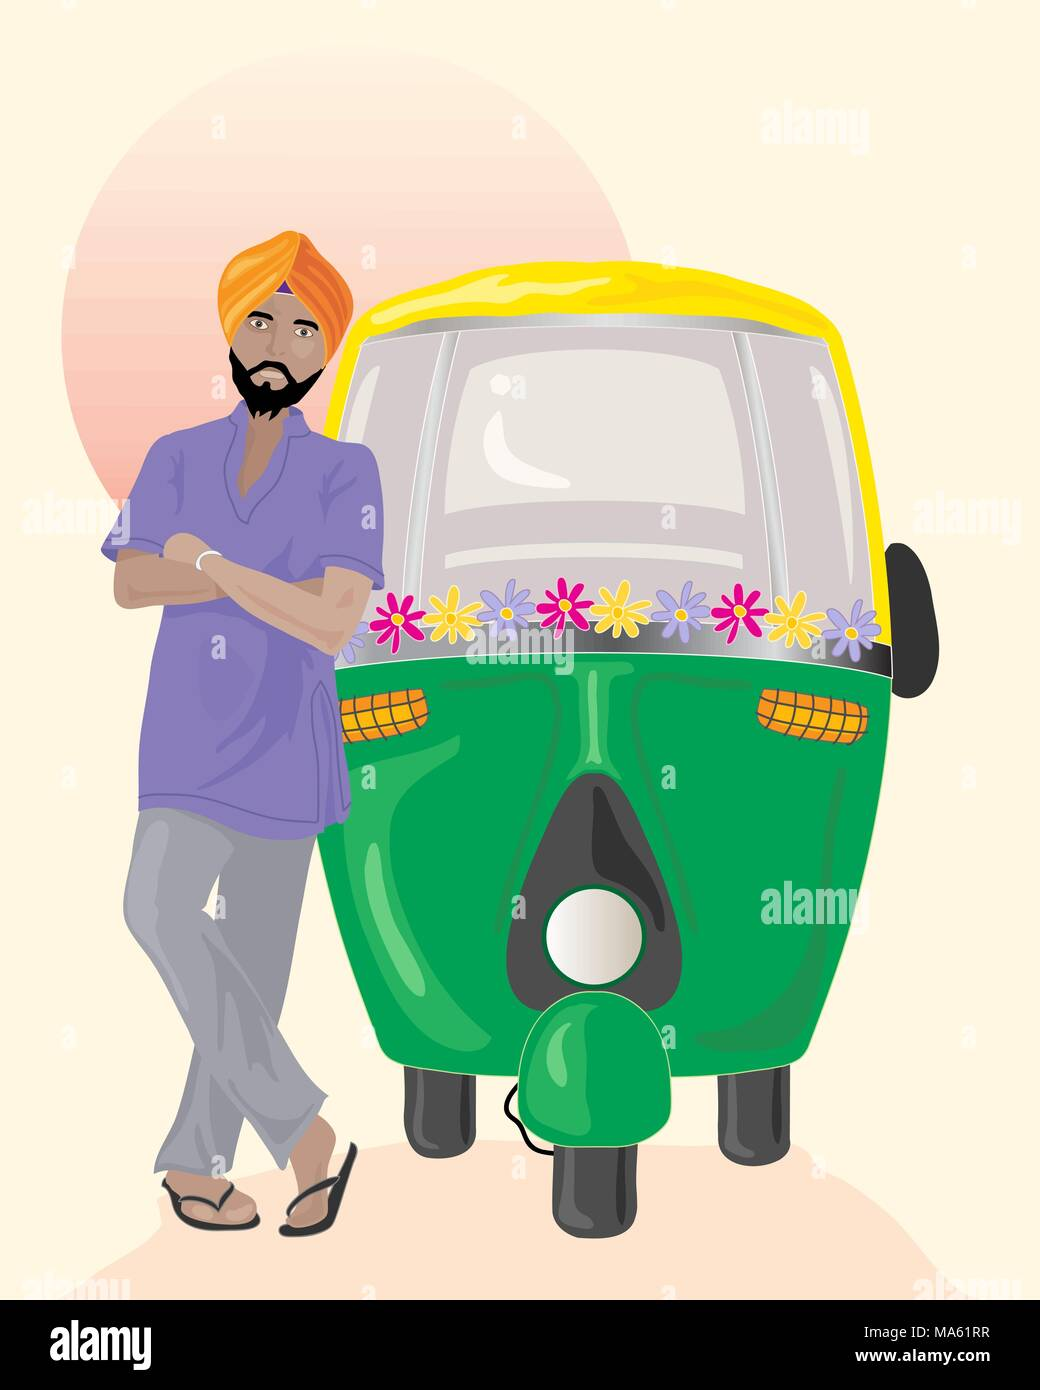 a vector illustration in eps 10 format of a Sikh taxi driver with orange turban standing next to a decorated auto rickshaw under an Indian sun - Stock Vector